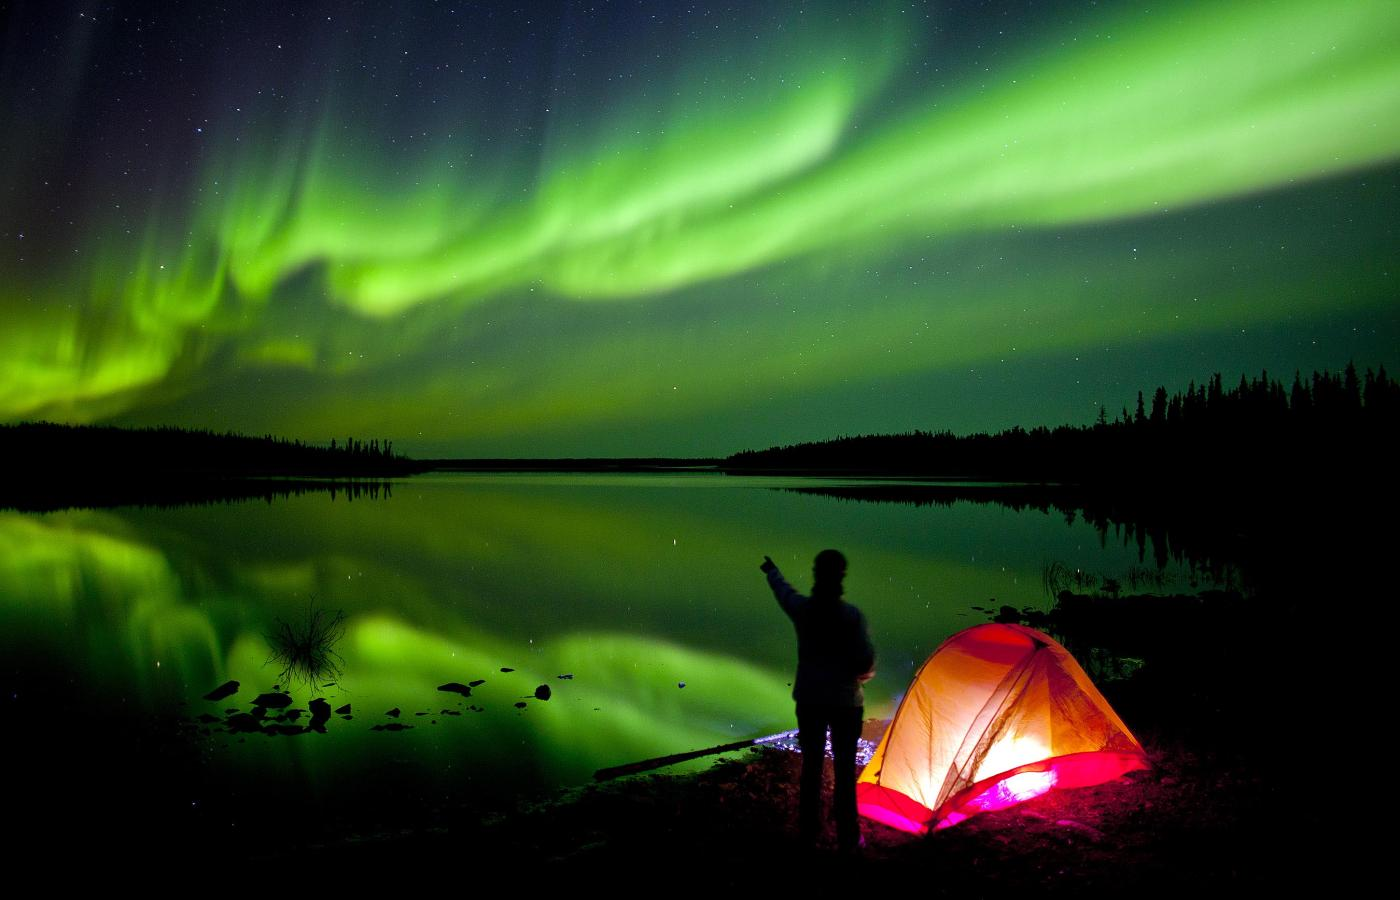 The aurora over Peterson's Point Lake Lodge in the Northwest Territories